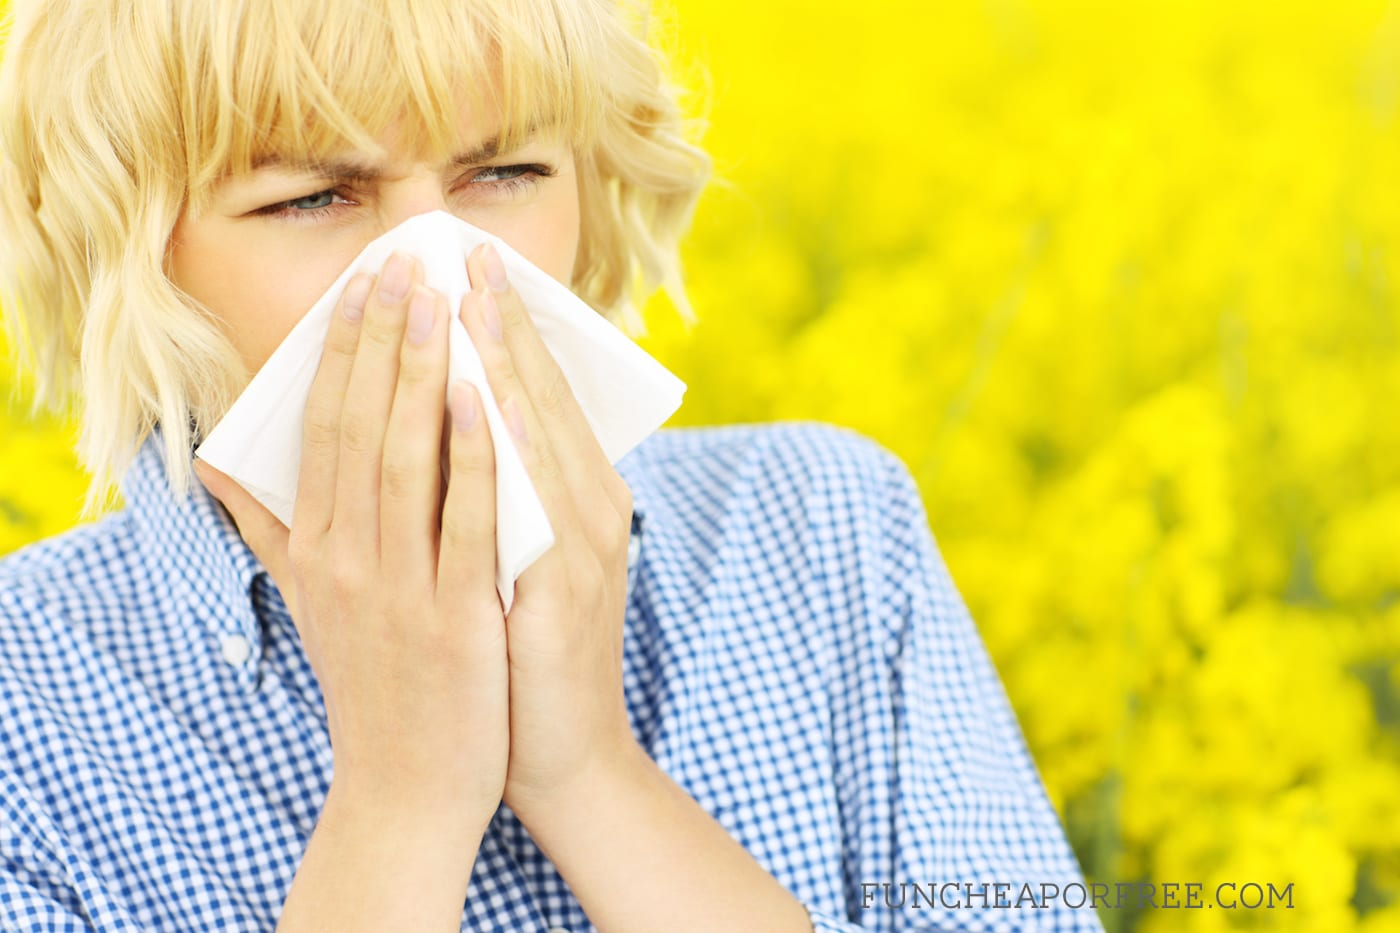 Who knew that CURTAINS were making my allergies worse?? Great ideas for getting rid of fall allergies!